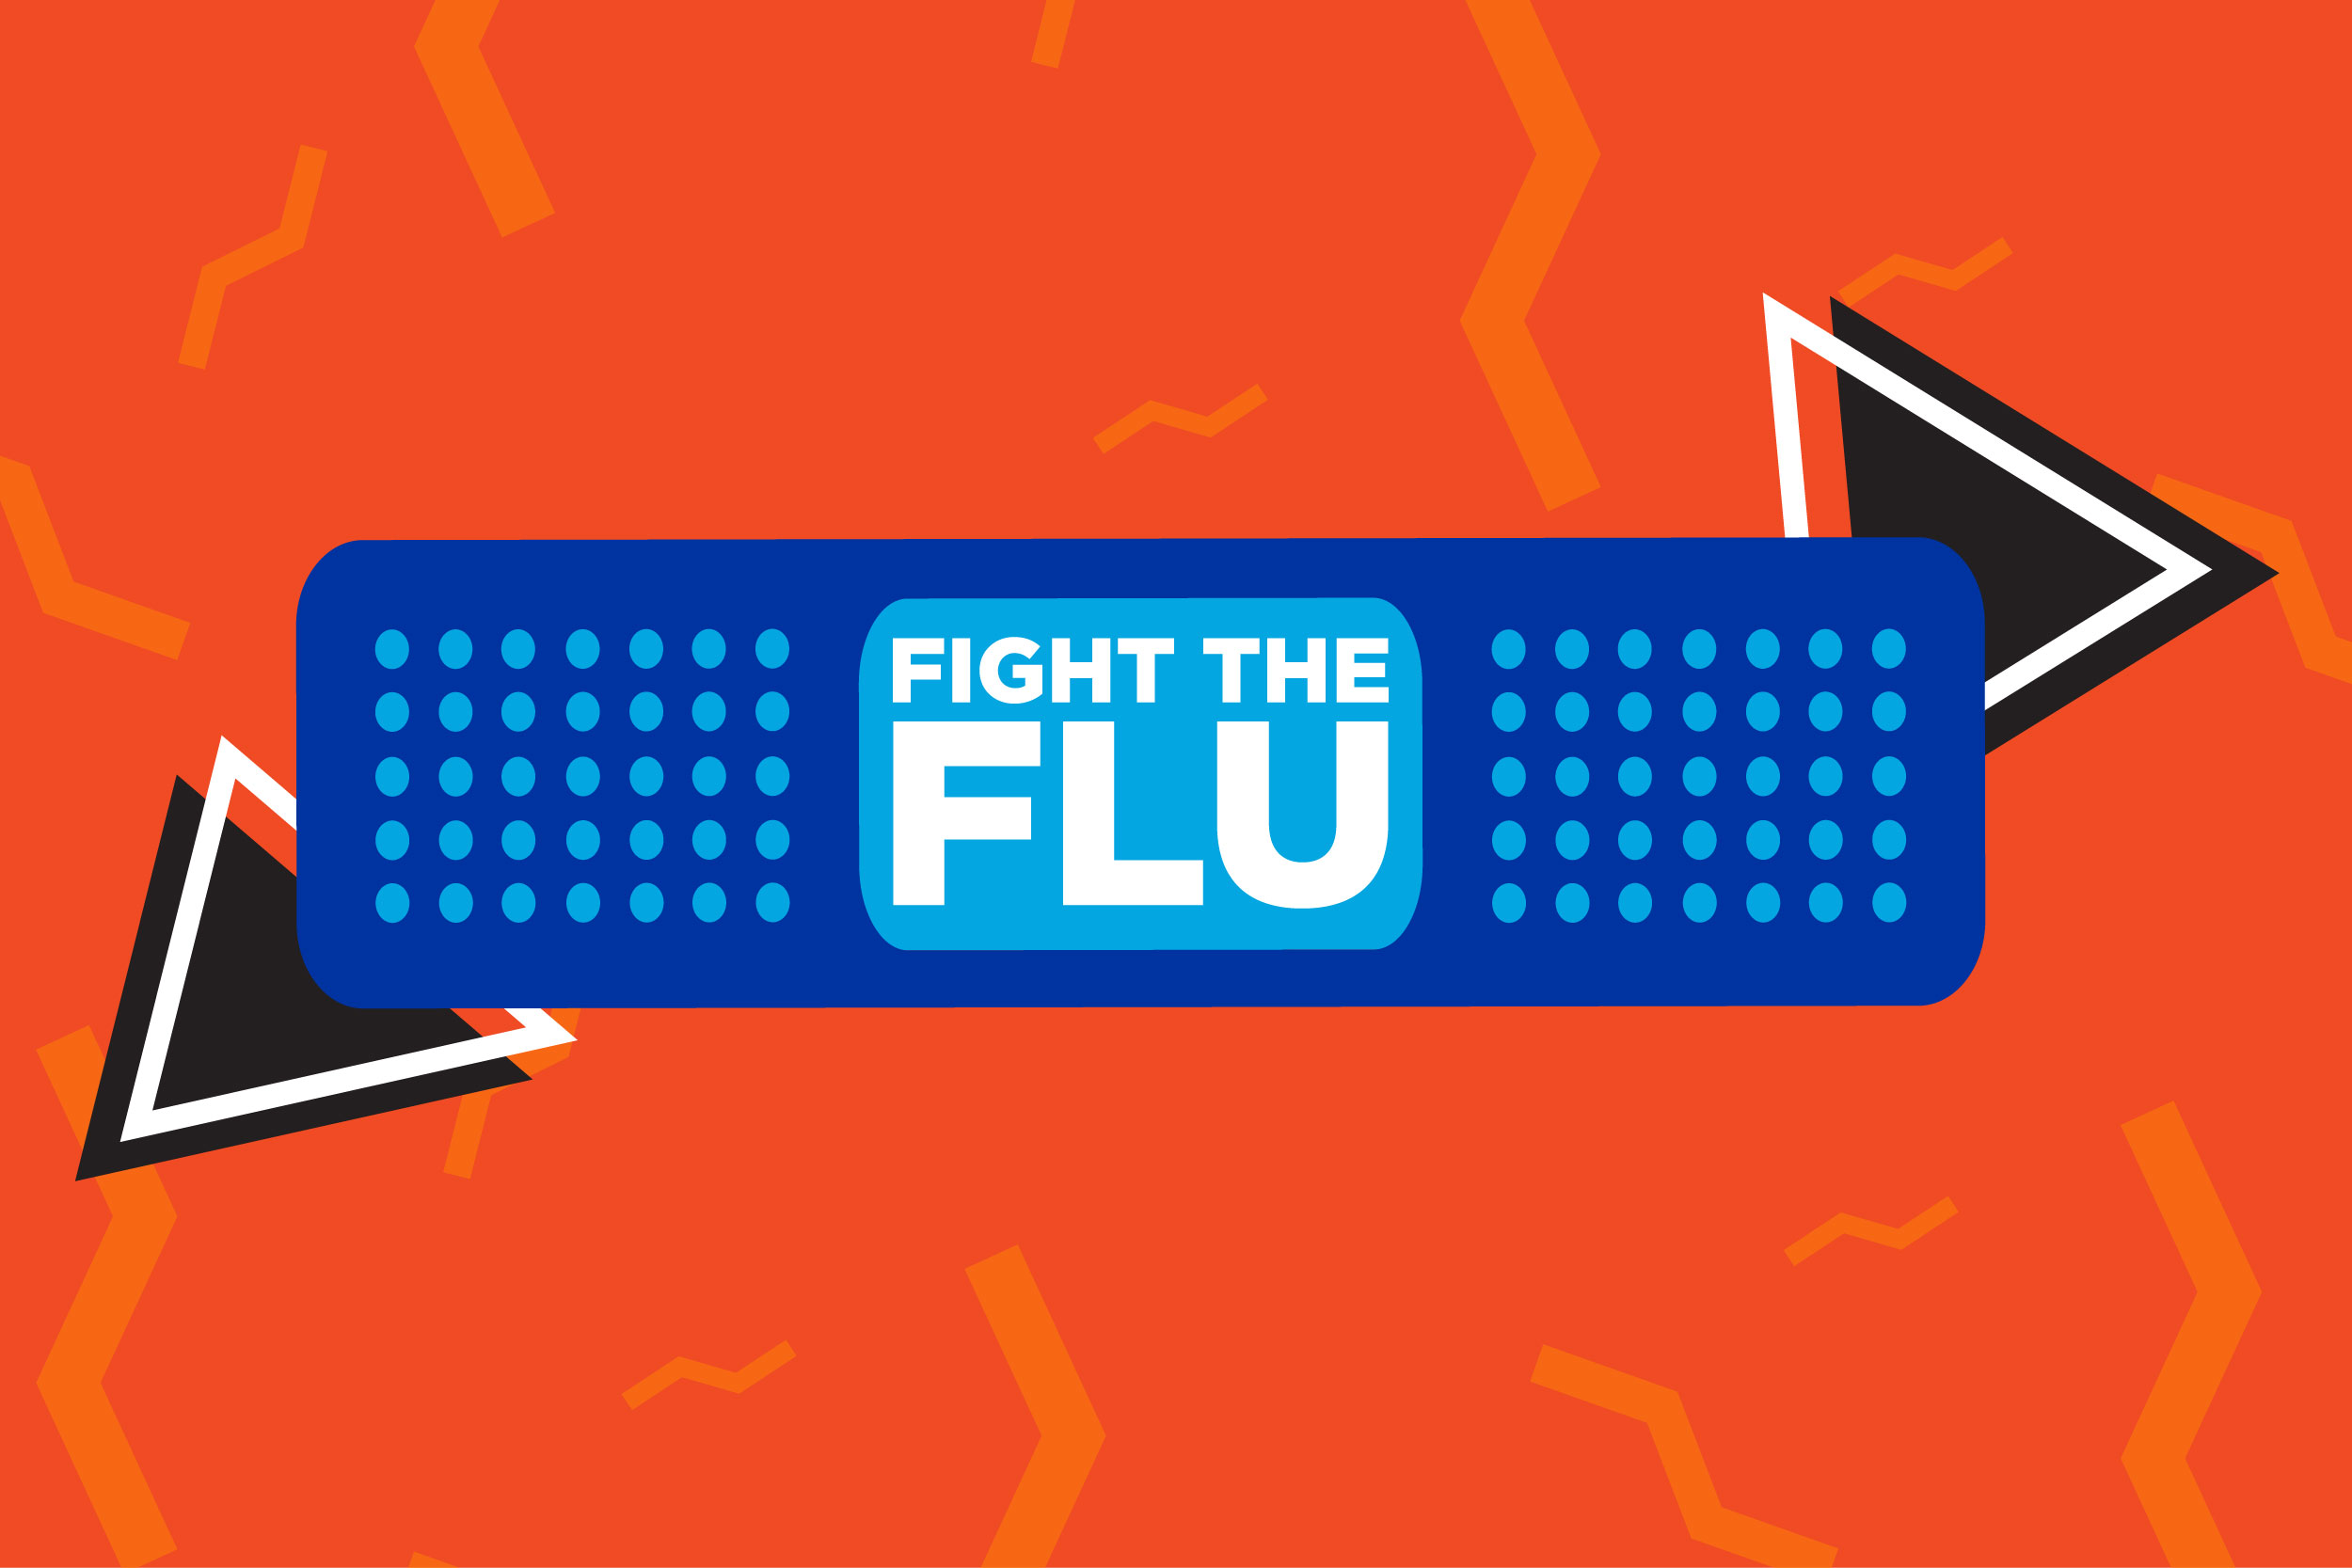 Graphic/decorative flu promotional image with a blue bandaid